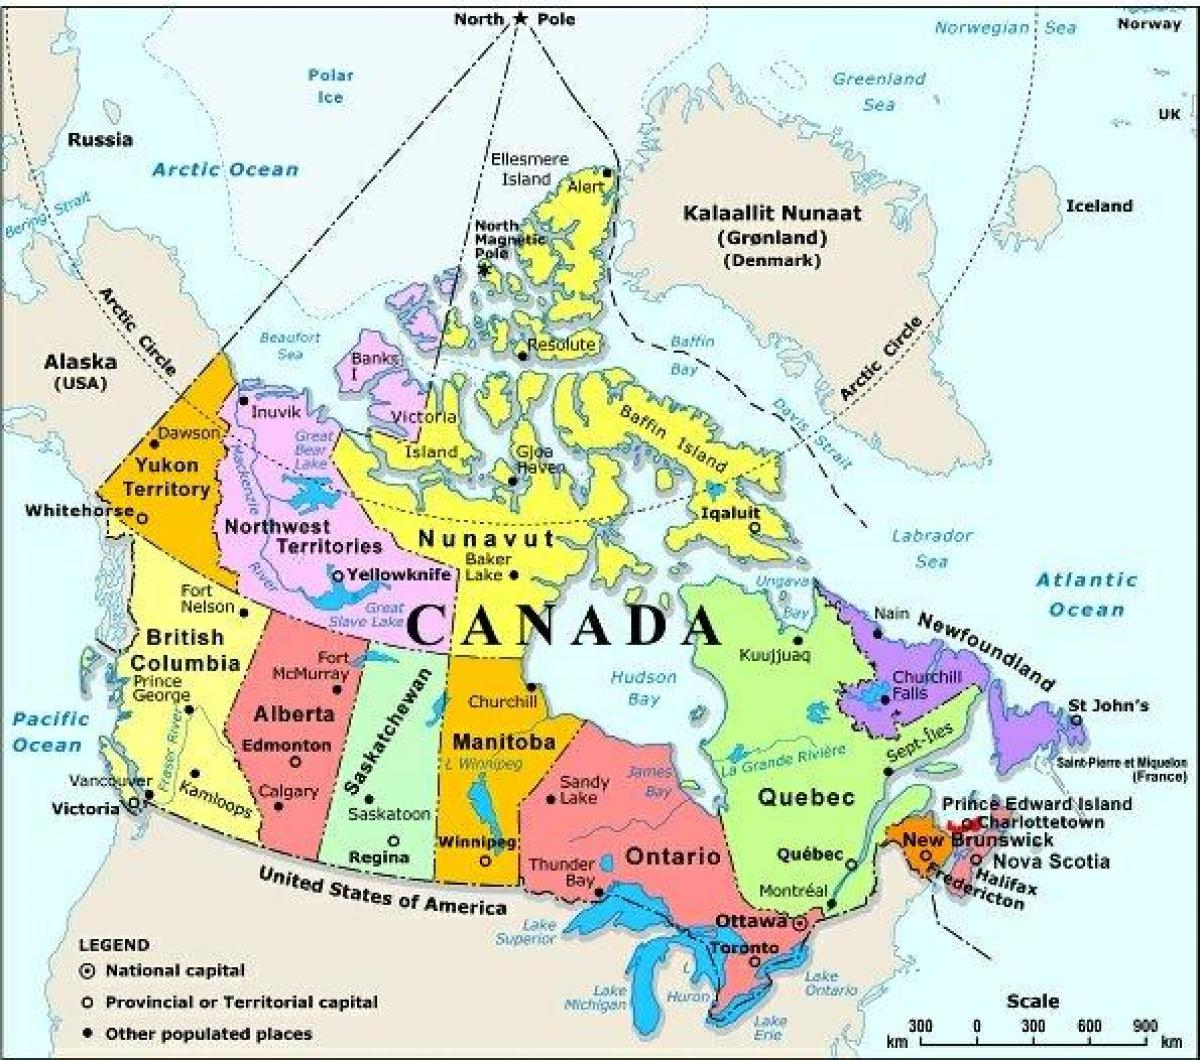 Western Canada map with cities - Map of western Canada with ... on canadian prairies, map of canada provinces, western coast of canada, central canada, map of chinese canada, map of idaho, map of ontario canada, map of canada showing cities, eastern canada, northern canada, alberta canada, map of alberta, map western usa and canada, map of british columbia, map of northeast coast of canada, location of ottawa canada, online map western canada, map of north america, atlantic canada, map of us and canada, map of jamaica, map us and canada map, map of eastern canada, map of manitoba, map of country canada, british columbia,